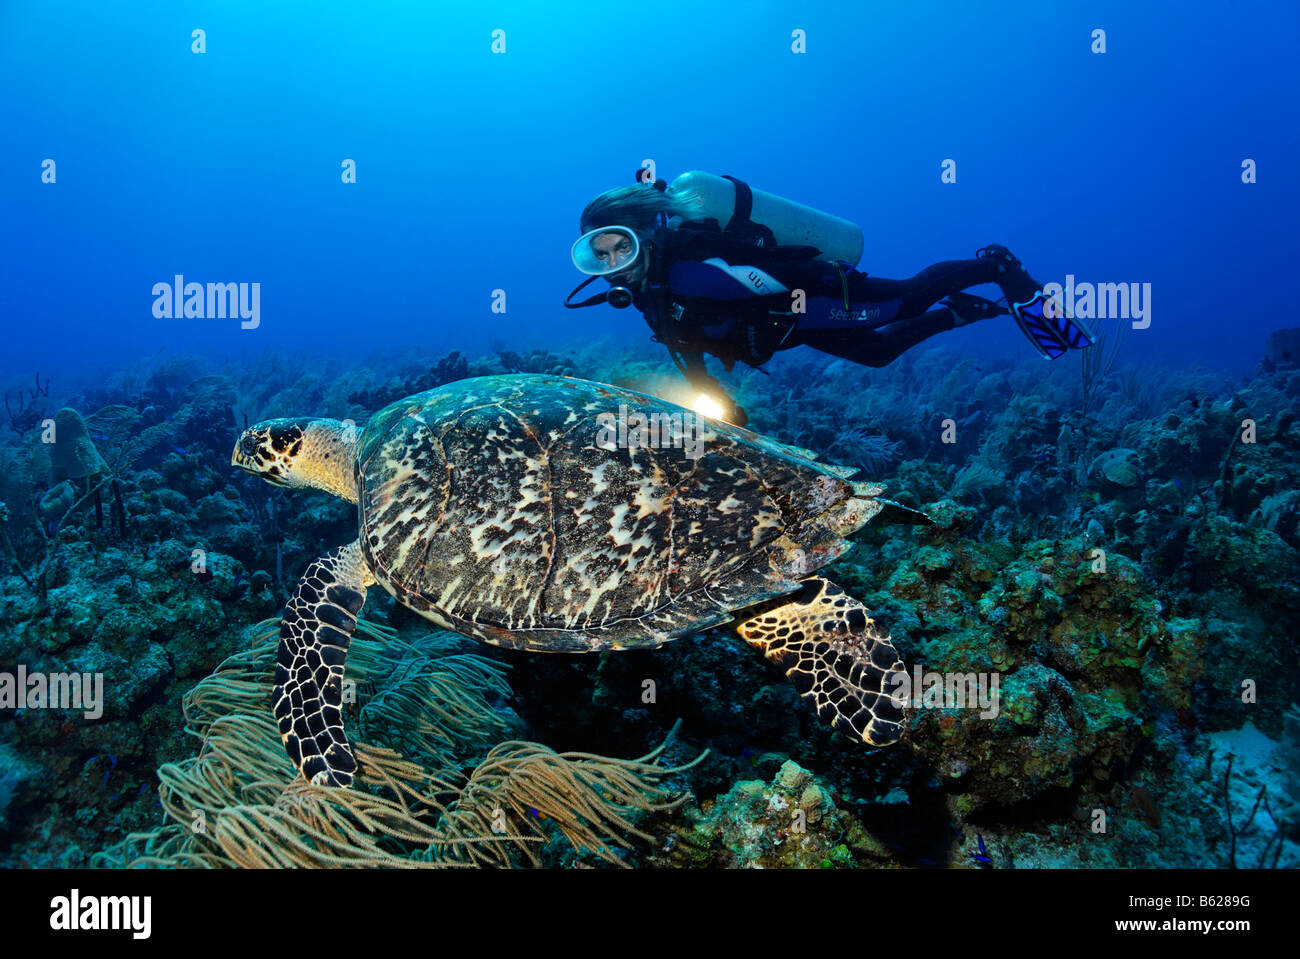 Female diver with a lamp observing a genuine Hawksbill Turtle (Eretmochelys imbricata) in a coral reef, Turneffe - Stock Image